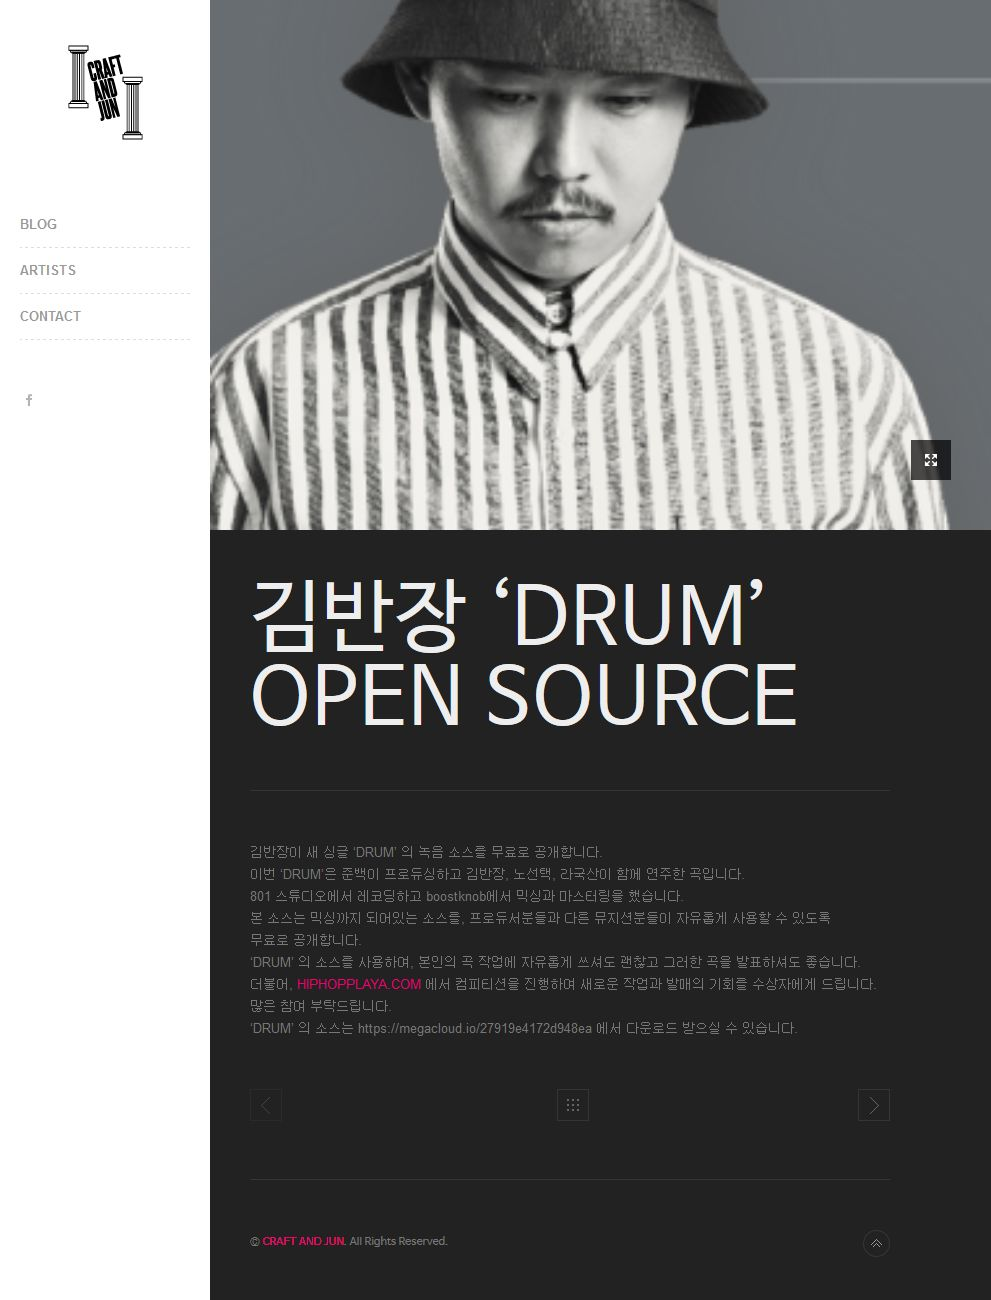 FireShot Screen Capture #016 - '김반장 'DRUM' OPEN SOURCE I CRAFT AND JUN' - craftandjun_com_portfolio_김반장-drum-open-source.jpg